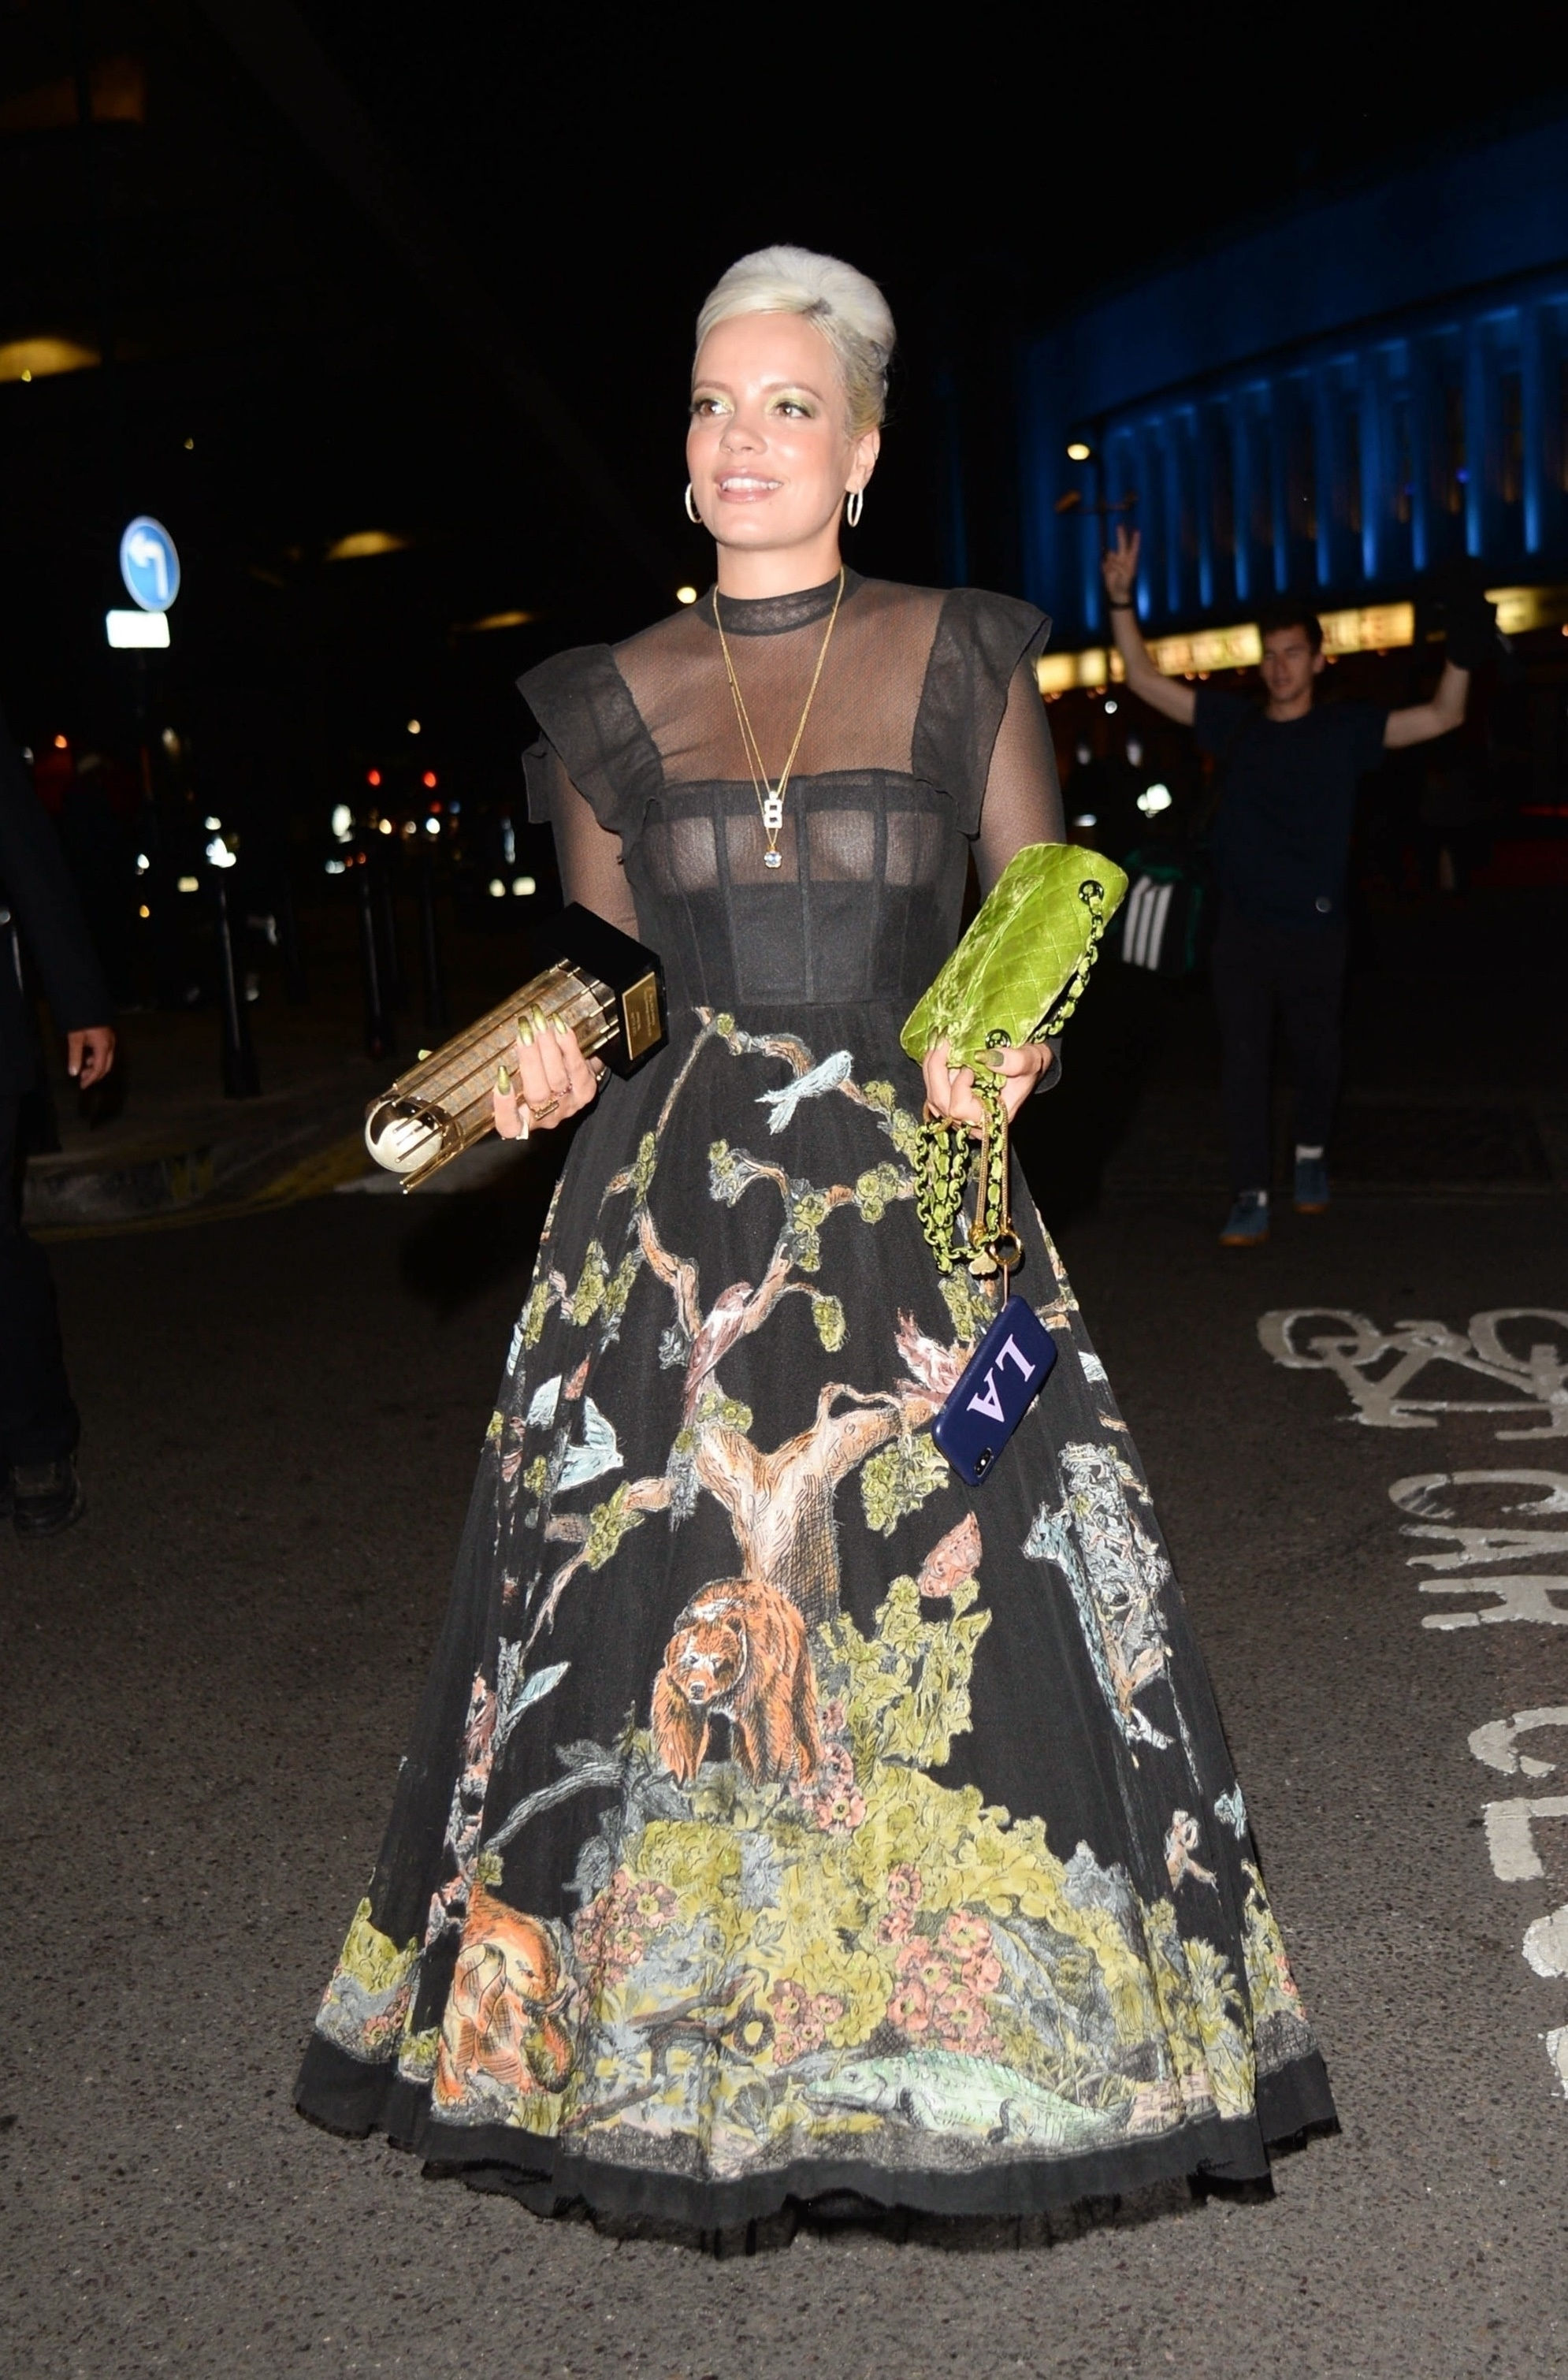 0919040453772_24_Lily-Allen-See-Through-TheFappeningBlog.com-25.jpg